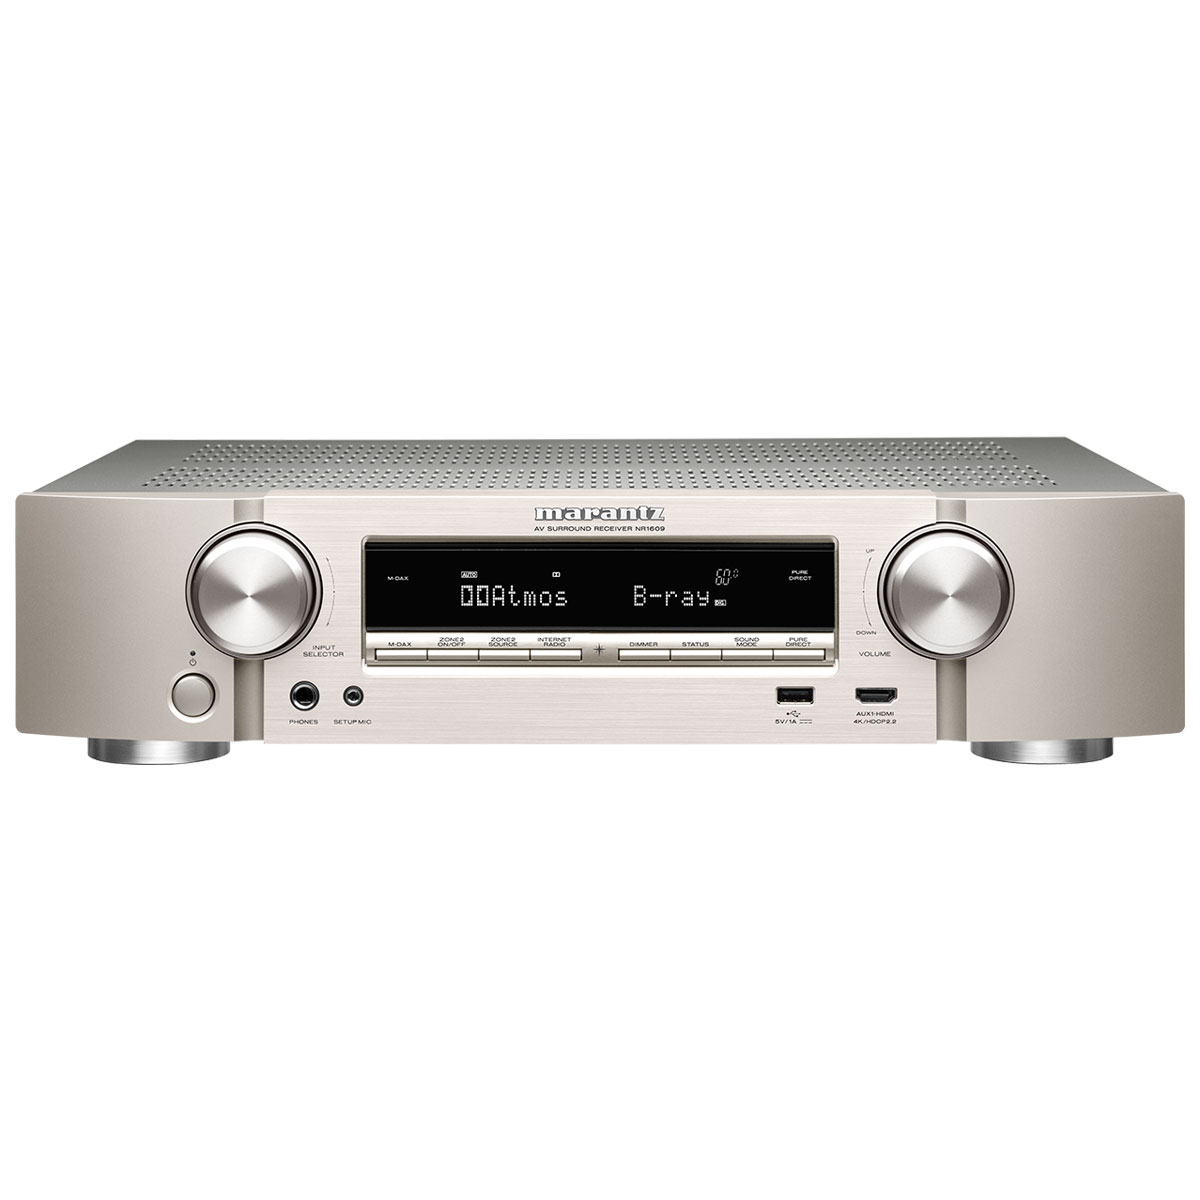 Ampli home cinéma Marantz NR1609 Argent/Or Ampli-tuner Home Cinema Slim 3D Ready 5.2 - Dolby Atmos / DTS:X - 8x HDMI 4K UHD, HDCP 2.2, HDR - Multiroom - Wi-Fi/Bluetooth/AirPlay 2 - Amazon Alexa